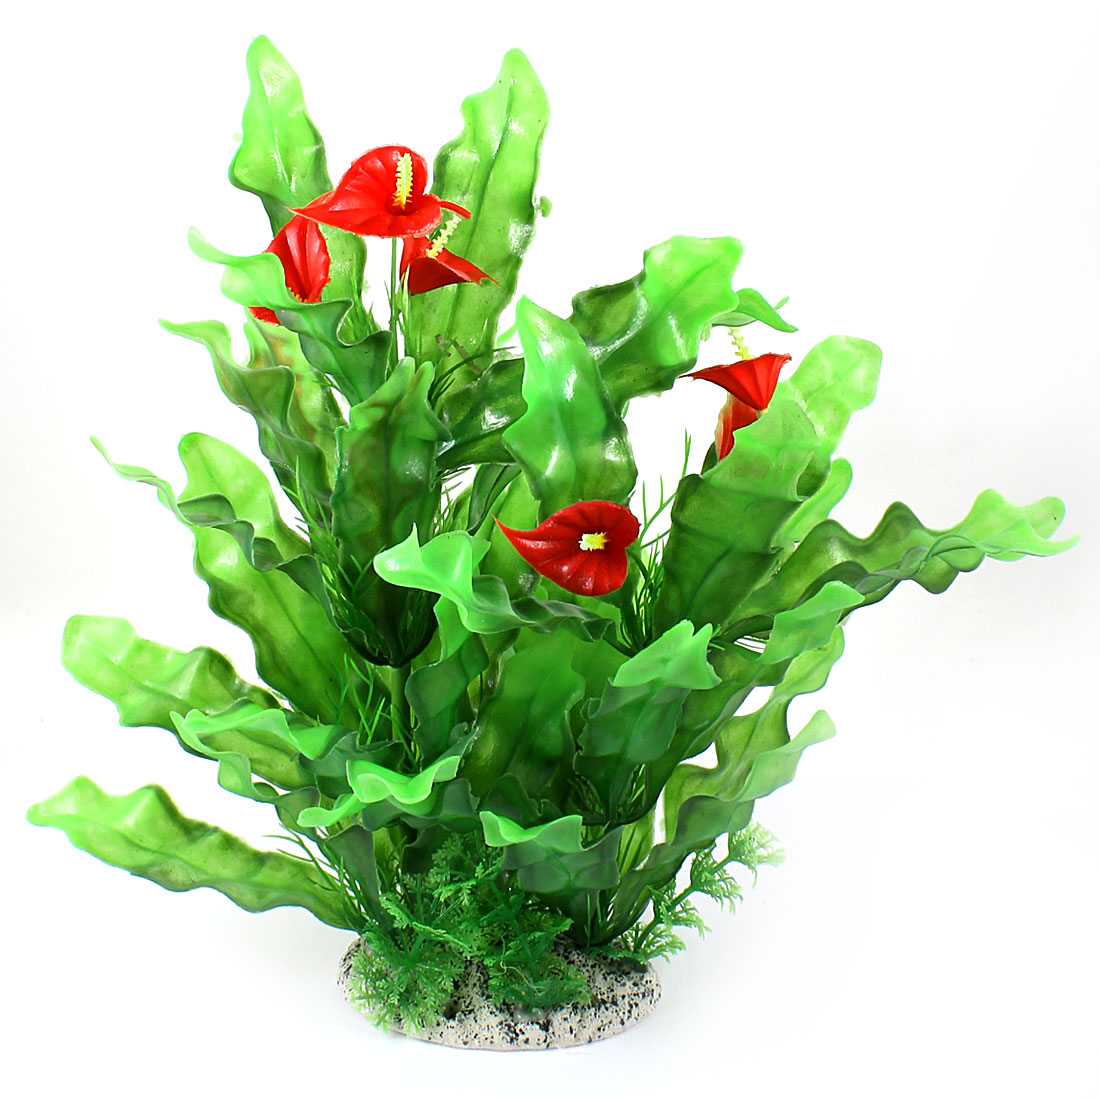 "Aquarium Fish Tank Ornament Landscaping Artificial Emulational Underwater Water Plant Grass Decor Green Red 11.8"" Height"